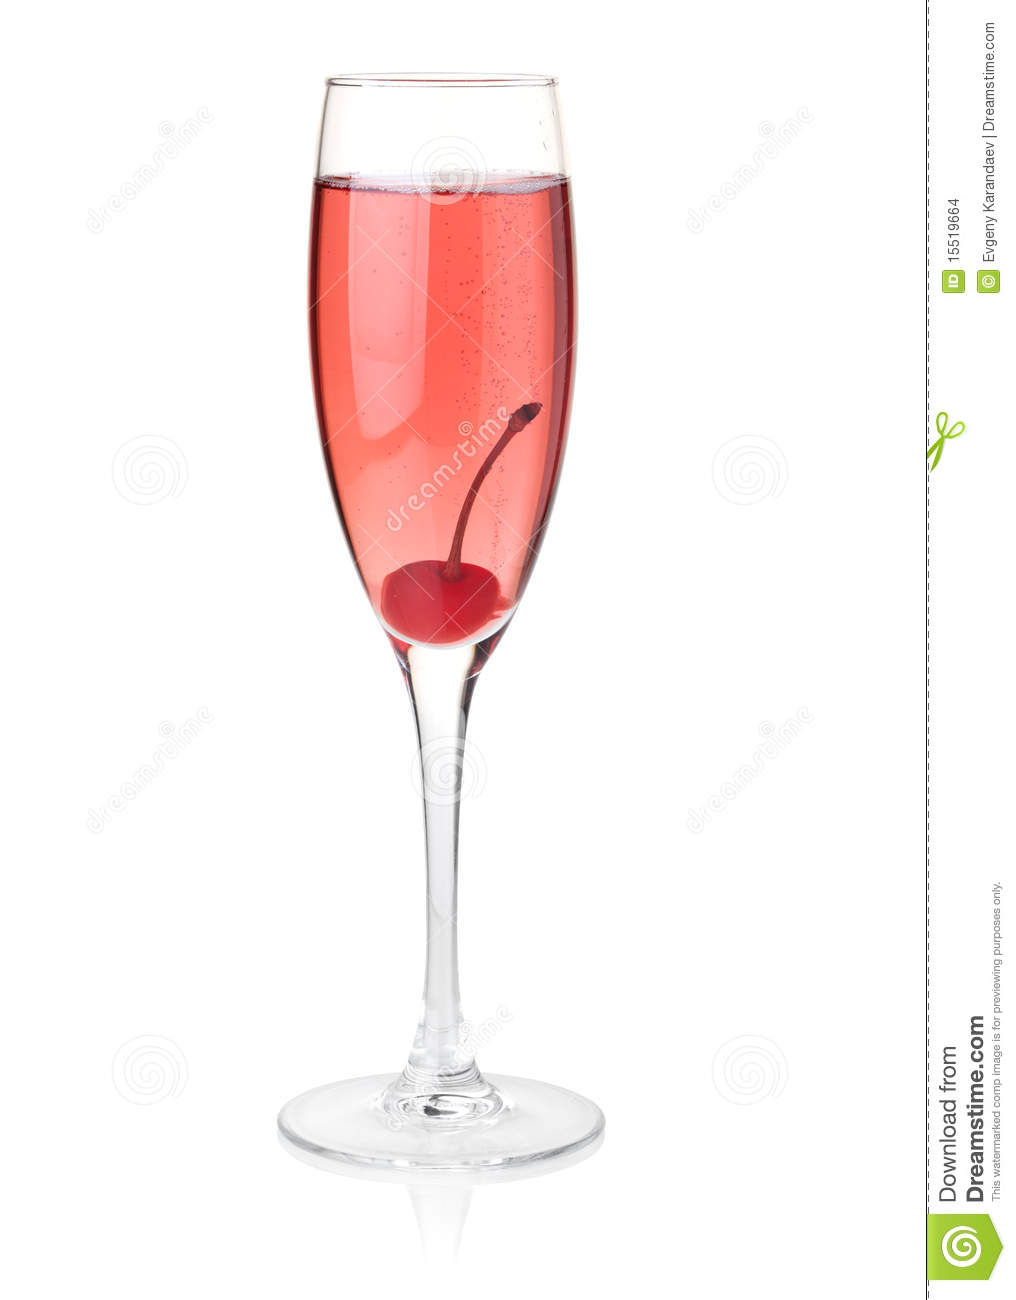 Rose champagne glass stock photo image of reflection for What is rose champagne